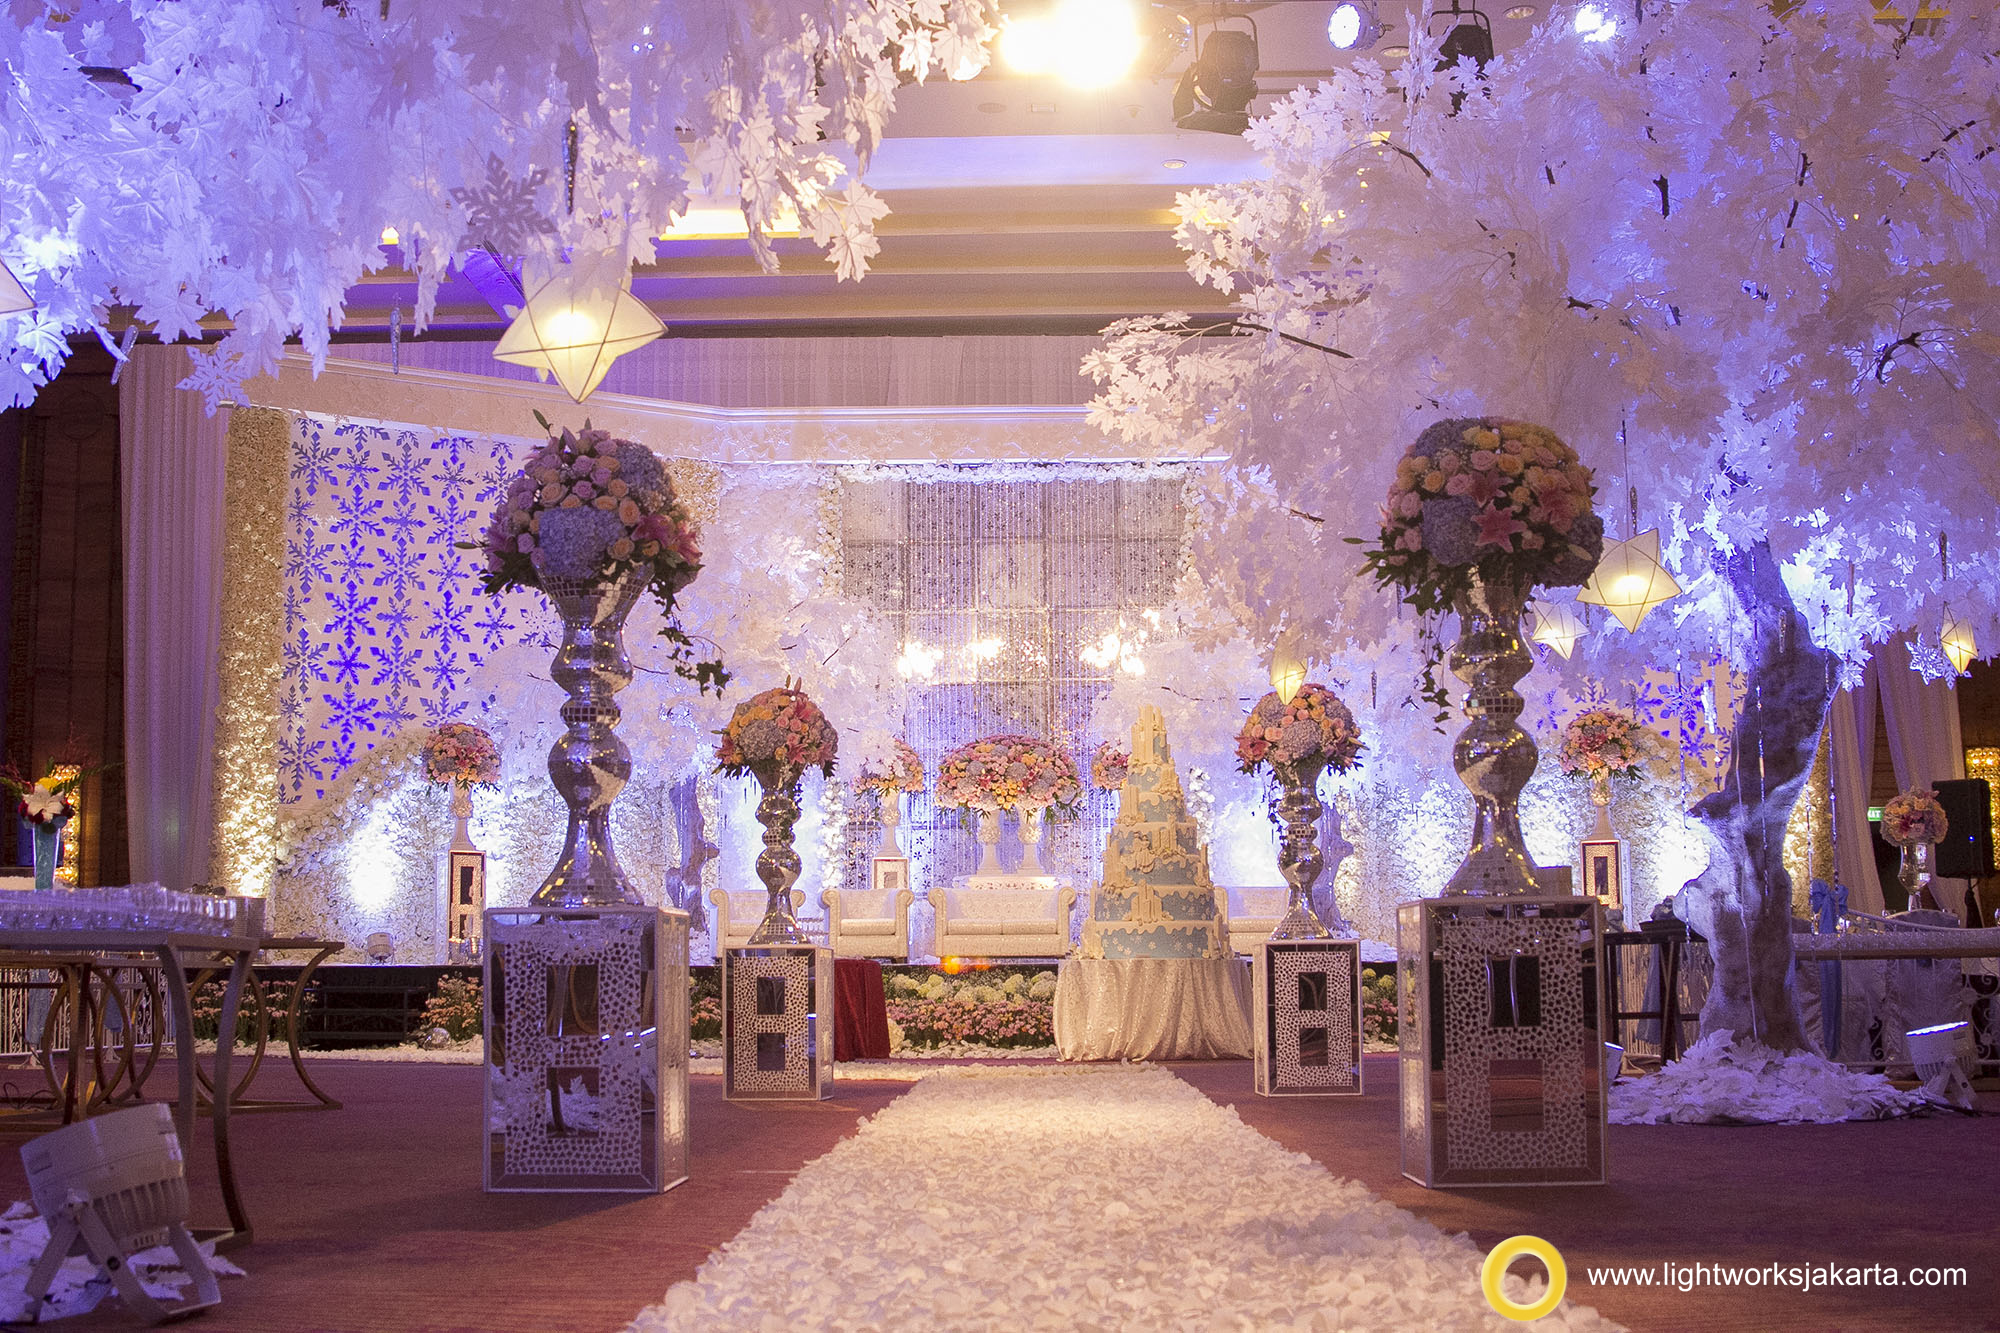 hubert and livias wedding reception venue at pullman central park hotel decorated by grasida